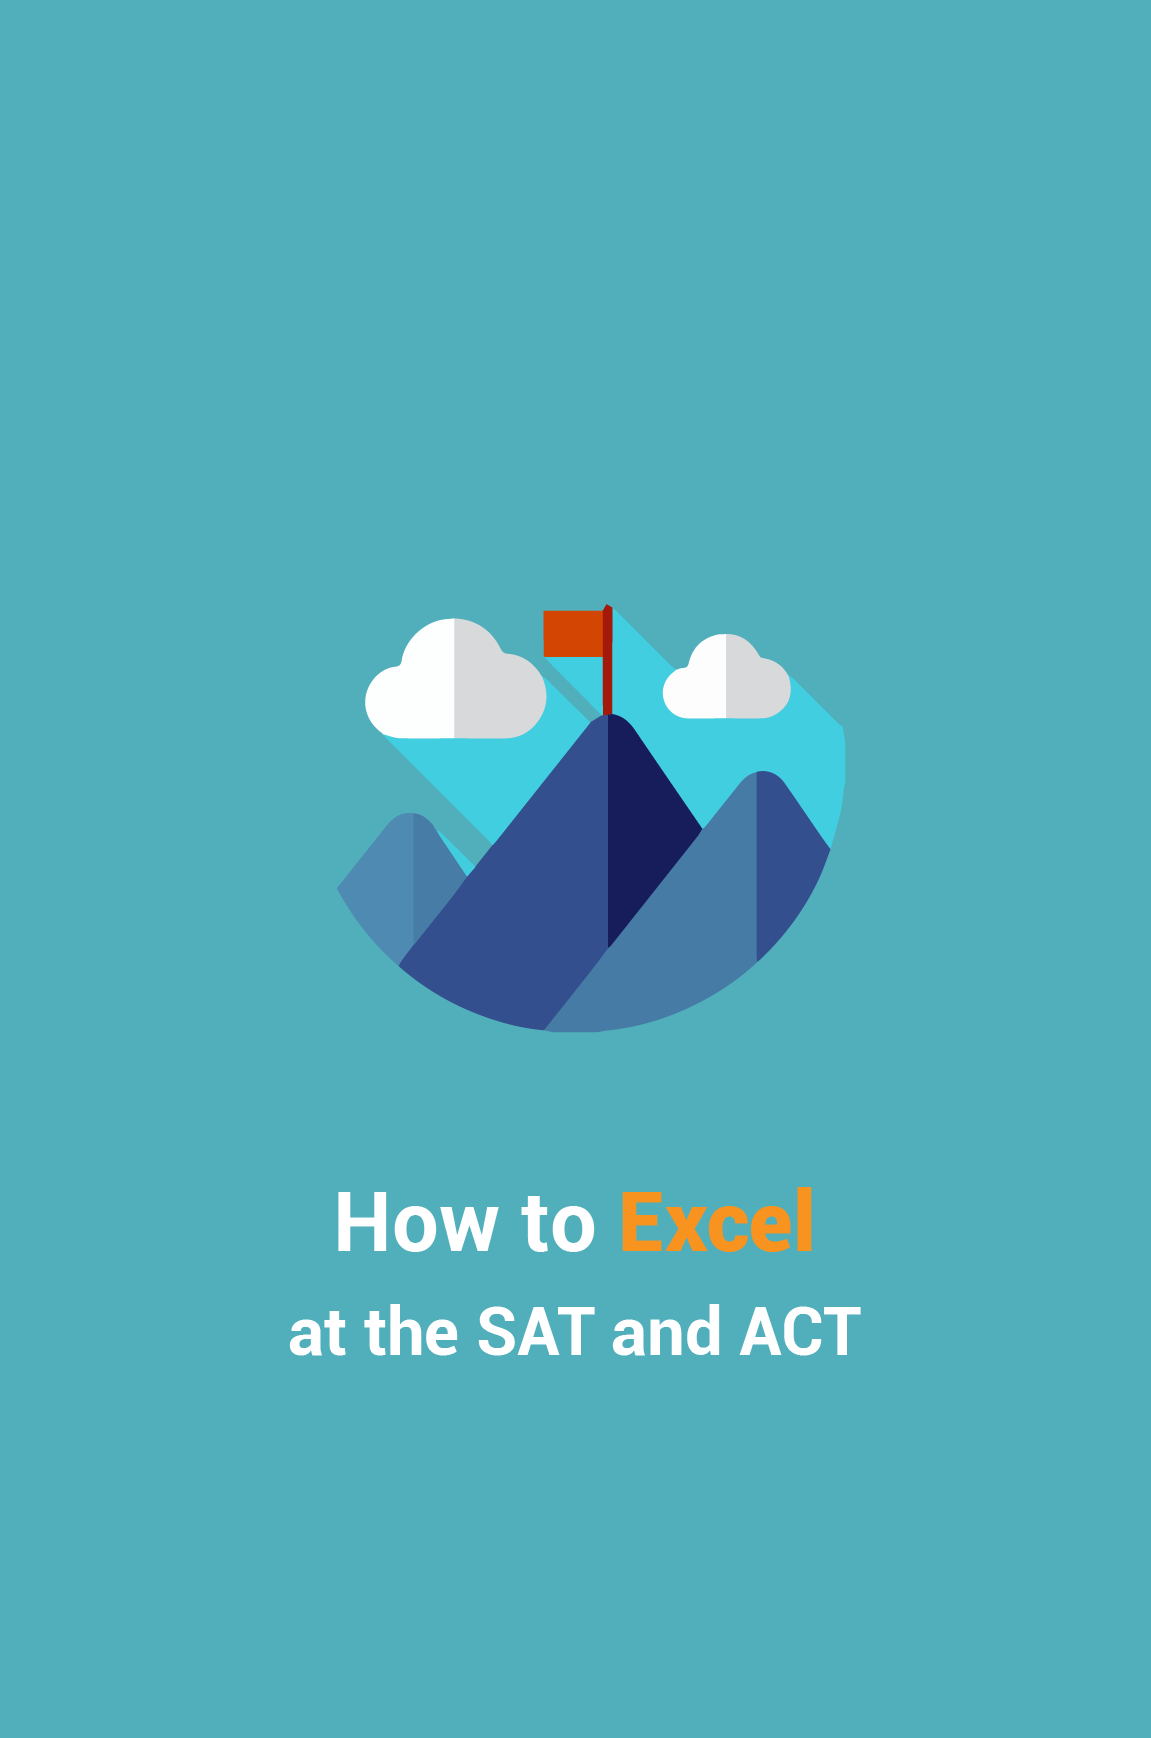 learn how to excel at the sat and act exams sat act tips pinterest